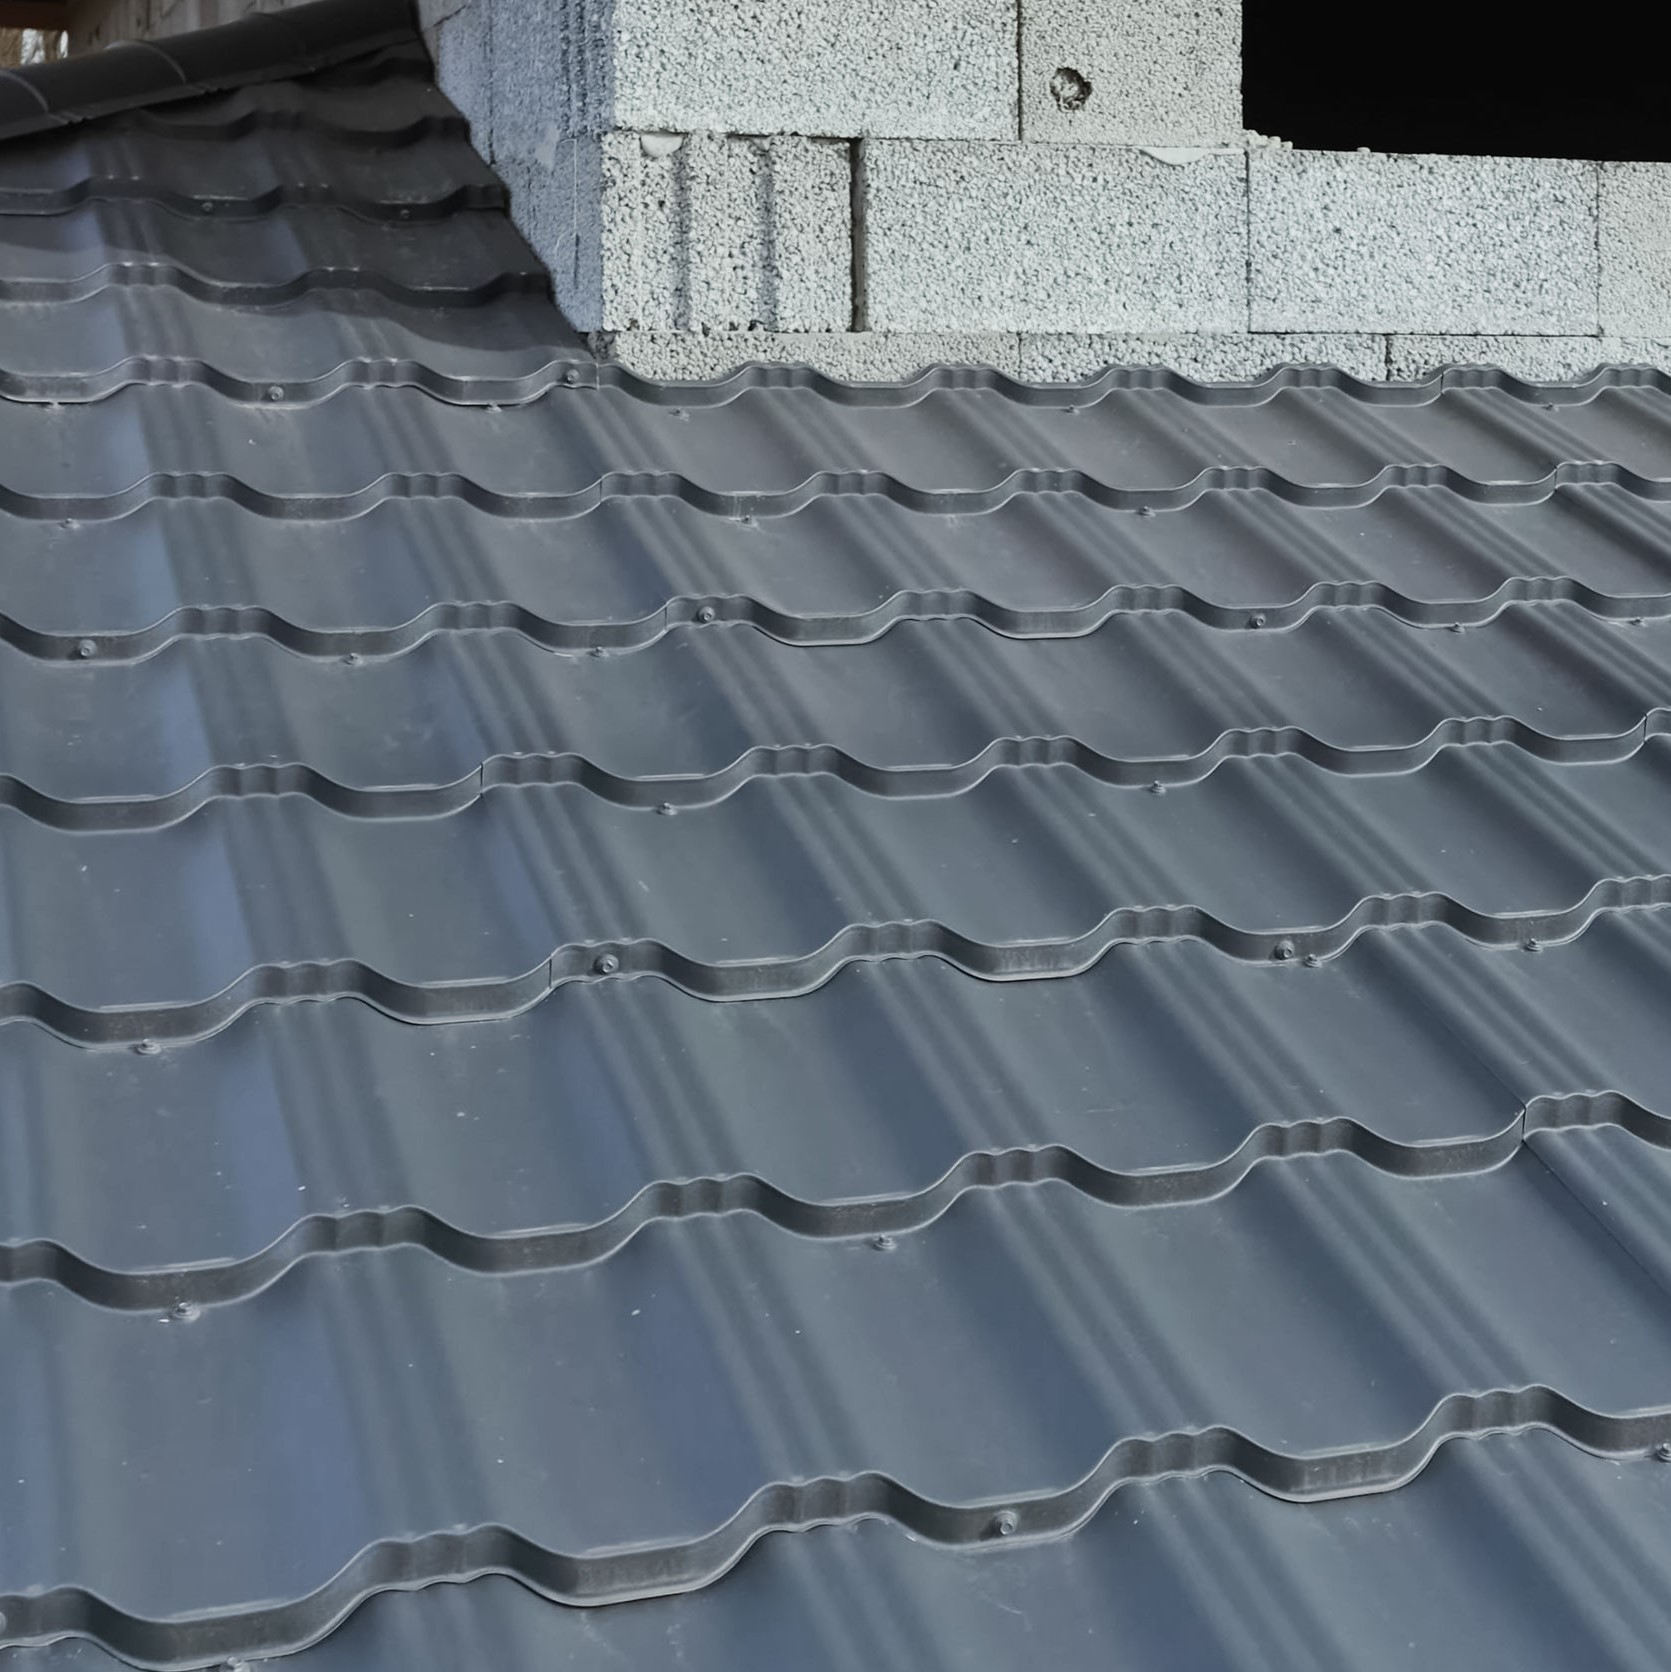 A metal tile roof with a distinctive pattern.